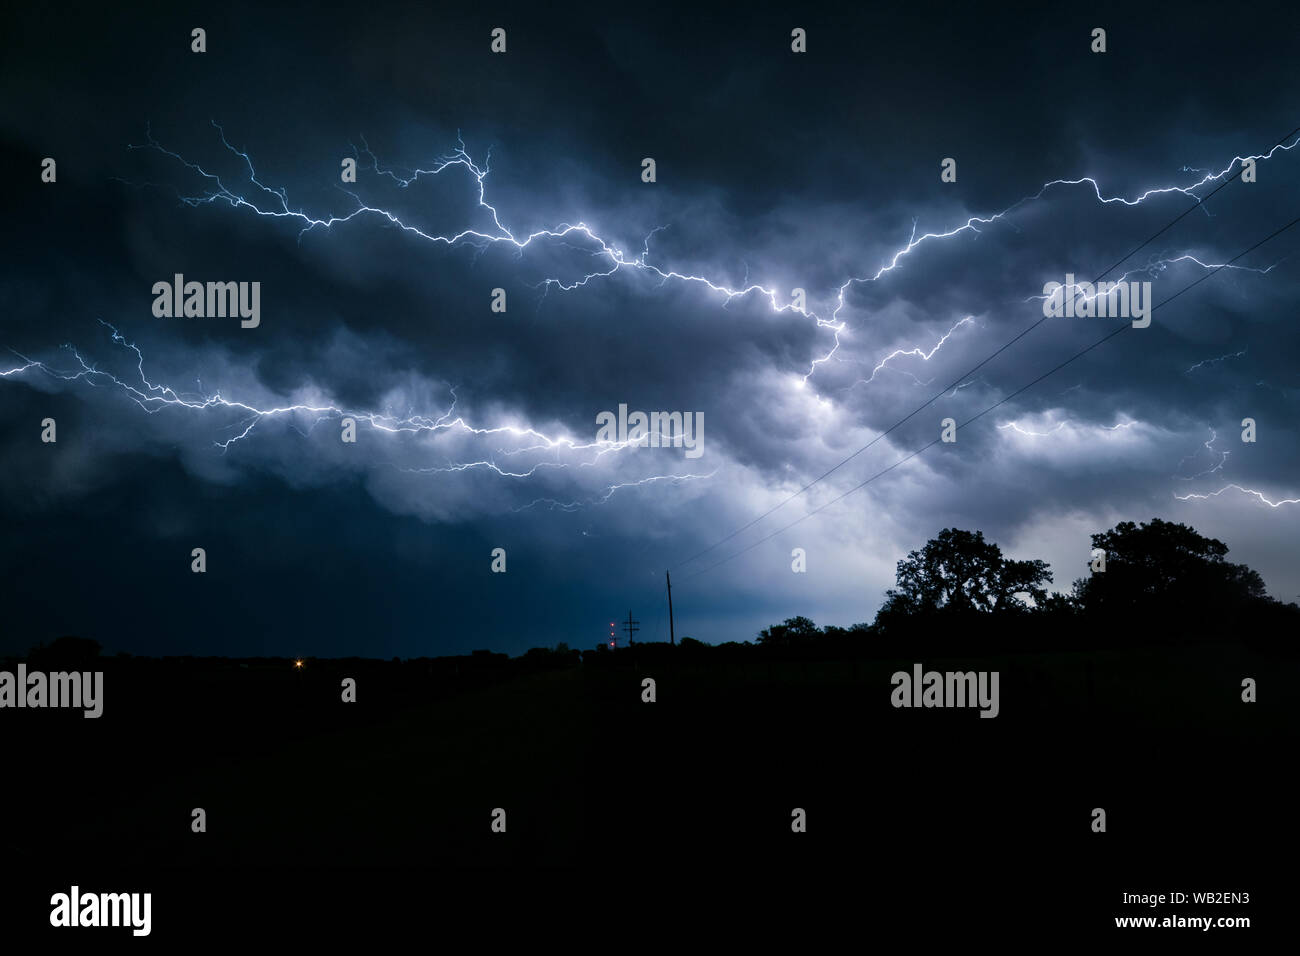 Multiple forked and branched lightning bolts in the sky over northeastern Nebraska Stock Photo